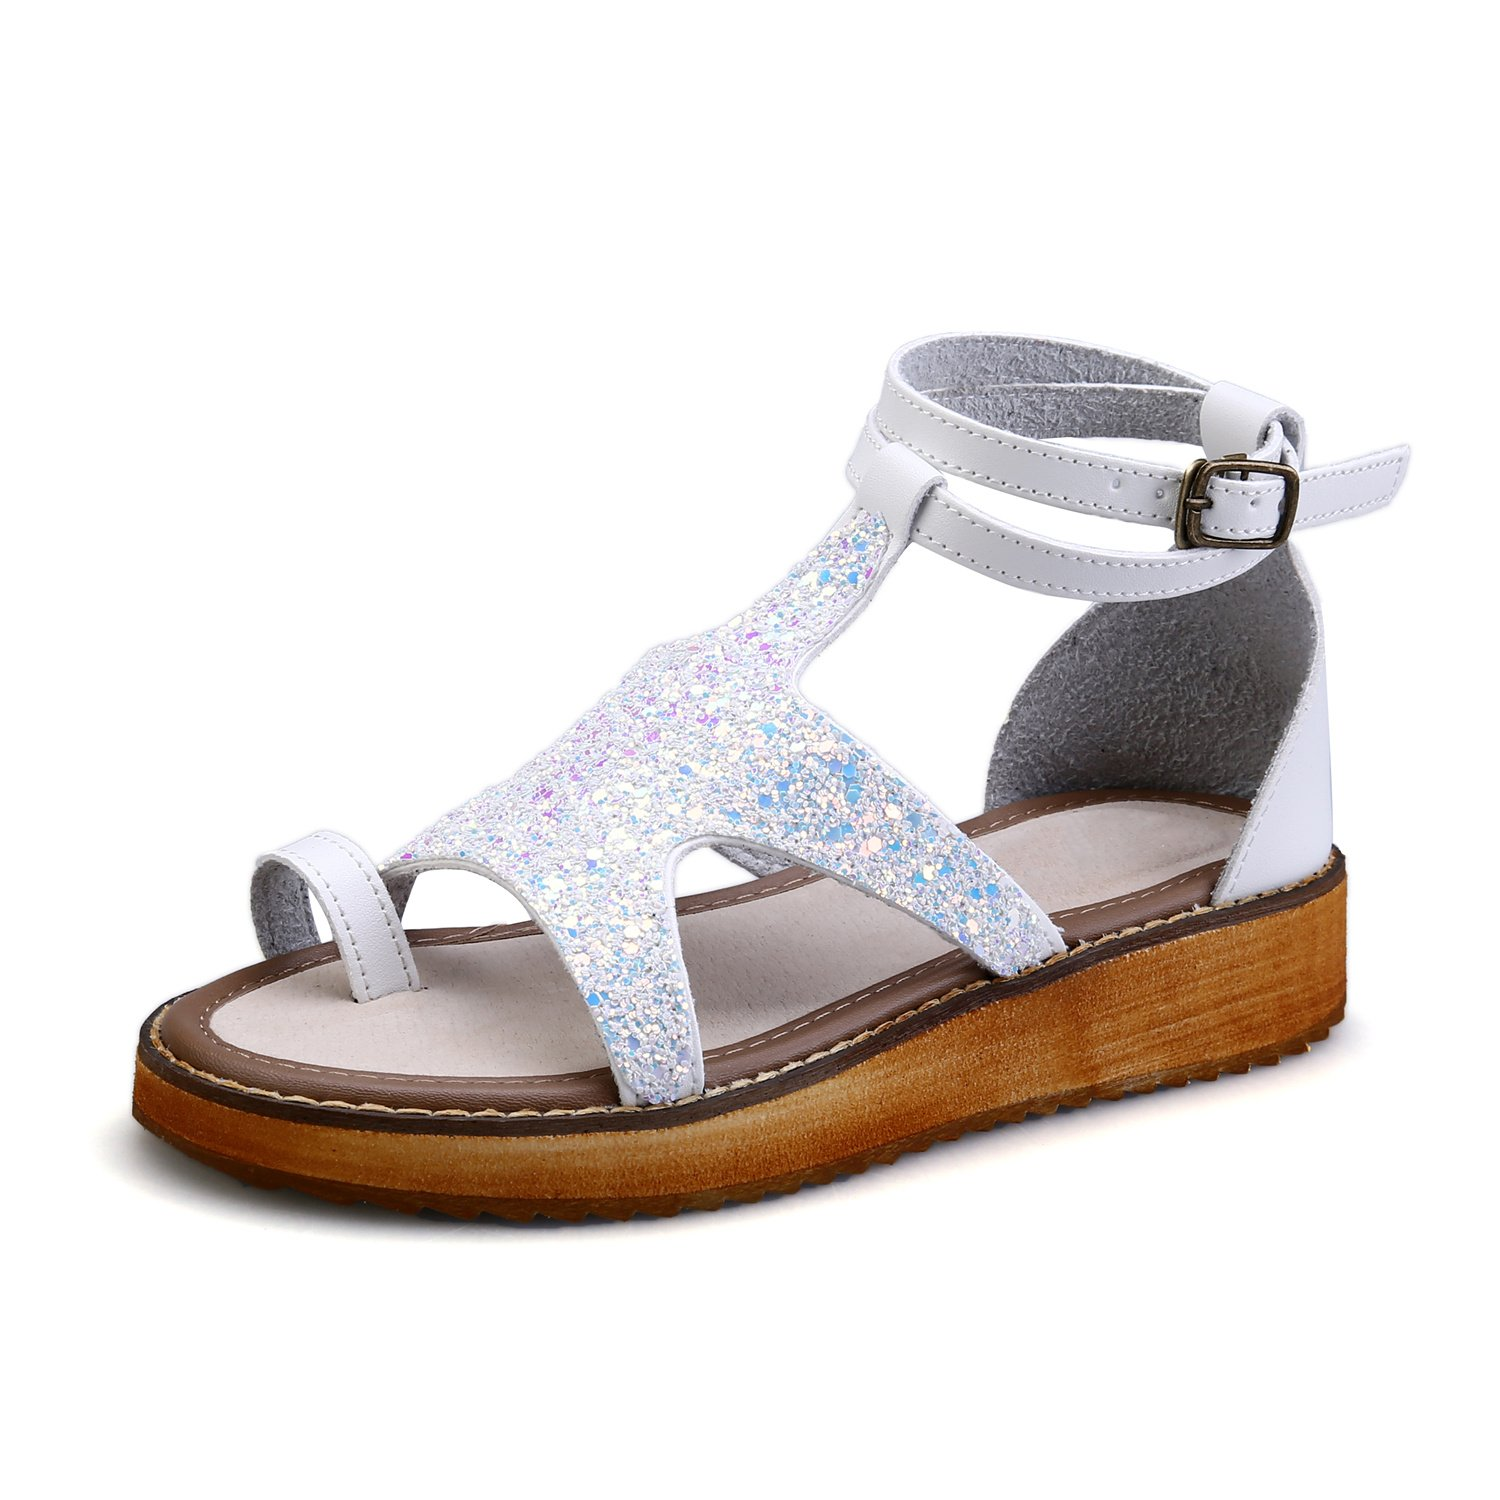 Smilun Girl's Roman Sandals Flip Flop Thong Rhinestone Back Strap Metal Buckle Strap Flip Flops Thongs Sandals Flat Gladiator Sandals White US6.5